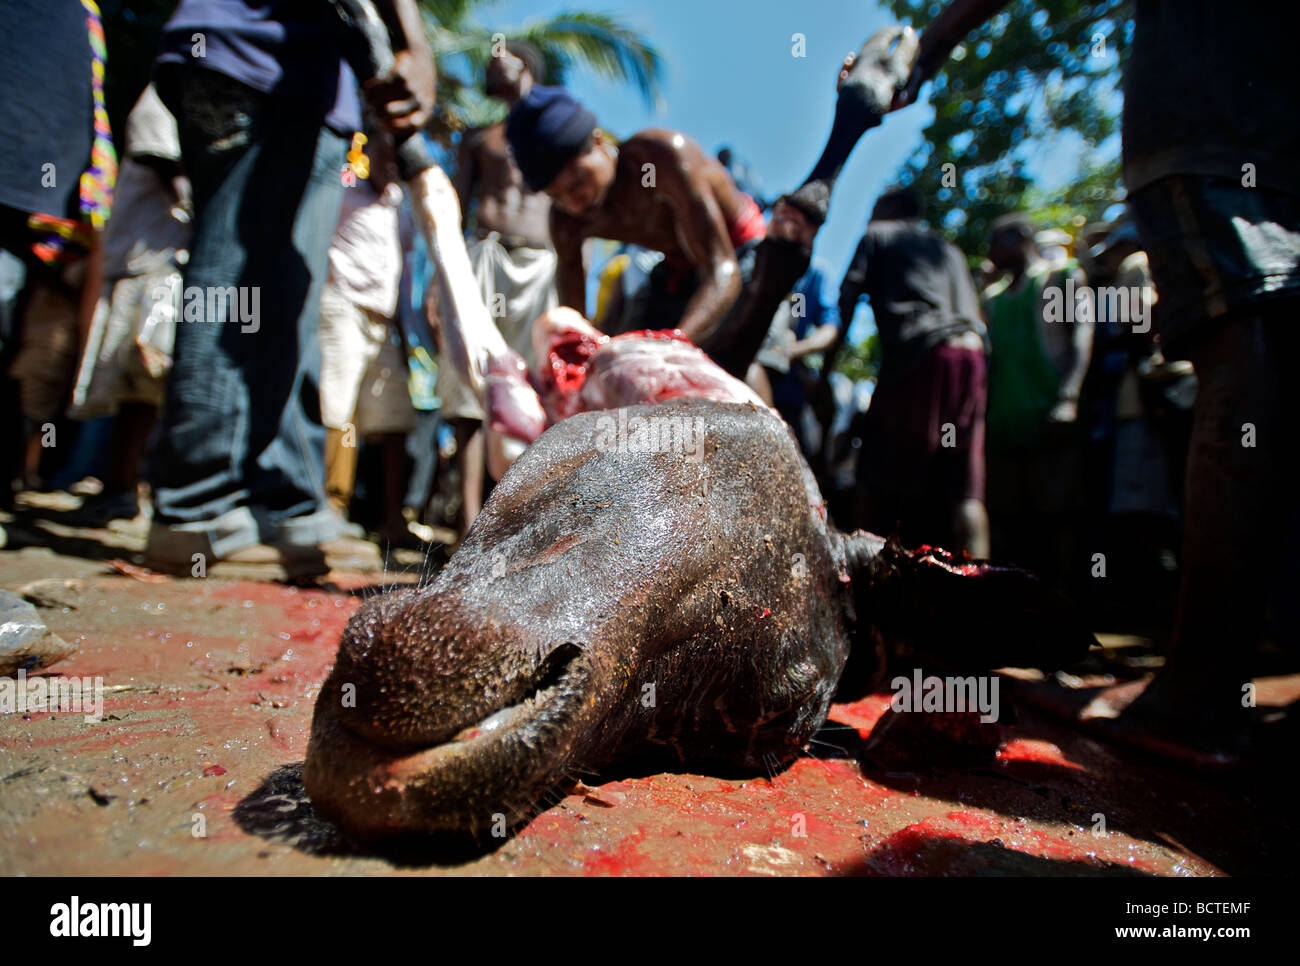 A group of pilgrims sacrifice a cow during the annual voodoo festival held in Plaine du Nord, Haiti, on July 24, - Stock Image